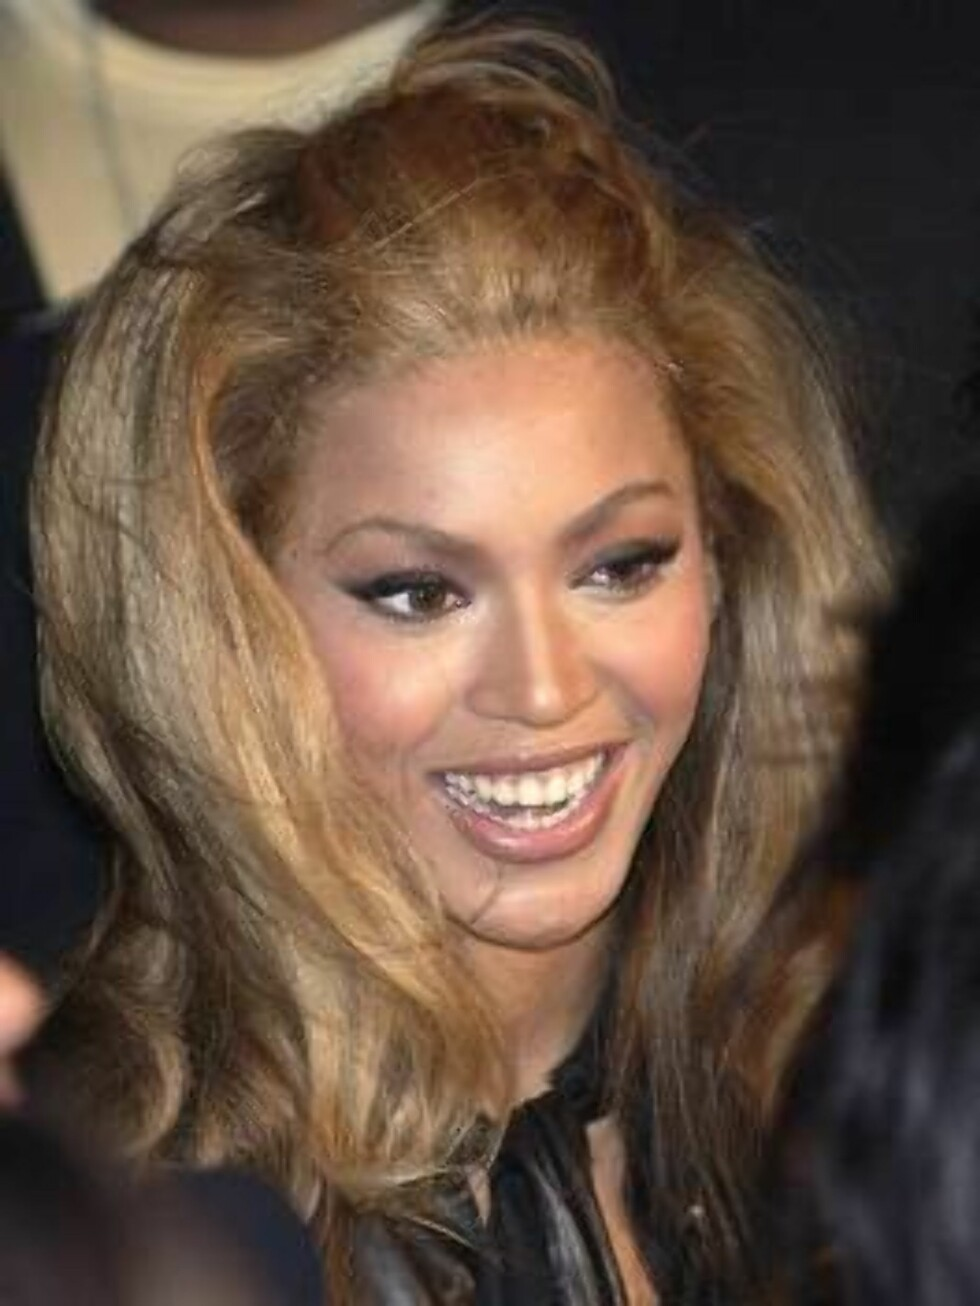 December 9, 2004; Cabazon, CA, USA; Singer BEYONCE KNOWLES at the Morongo Casino, Resort and Spa's grand opening event.   Photo by Vaughn Youtz/ZUMA Press. Code:4014  COPYRIGHT STELLA PICTURES   Foto: Stella Pictures